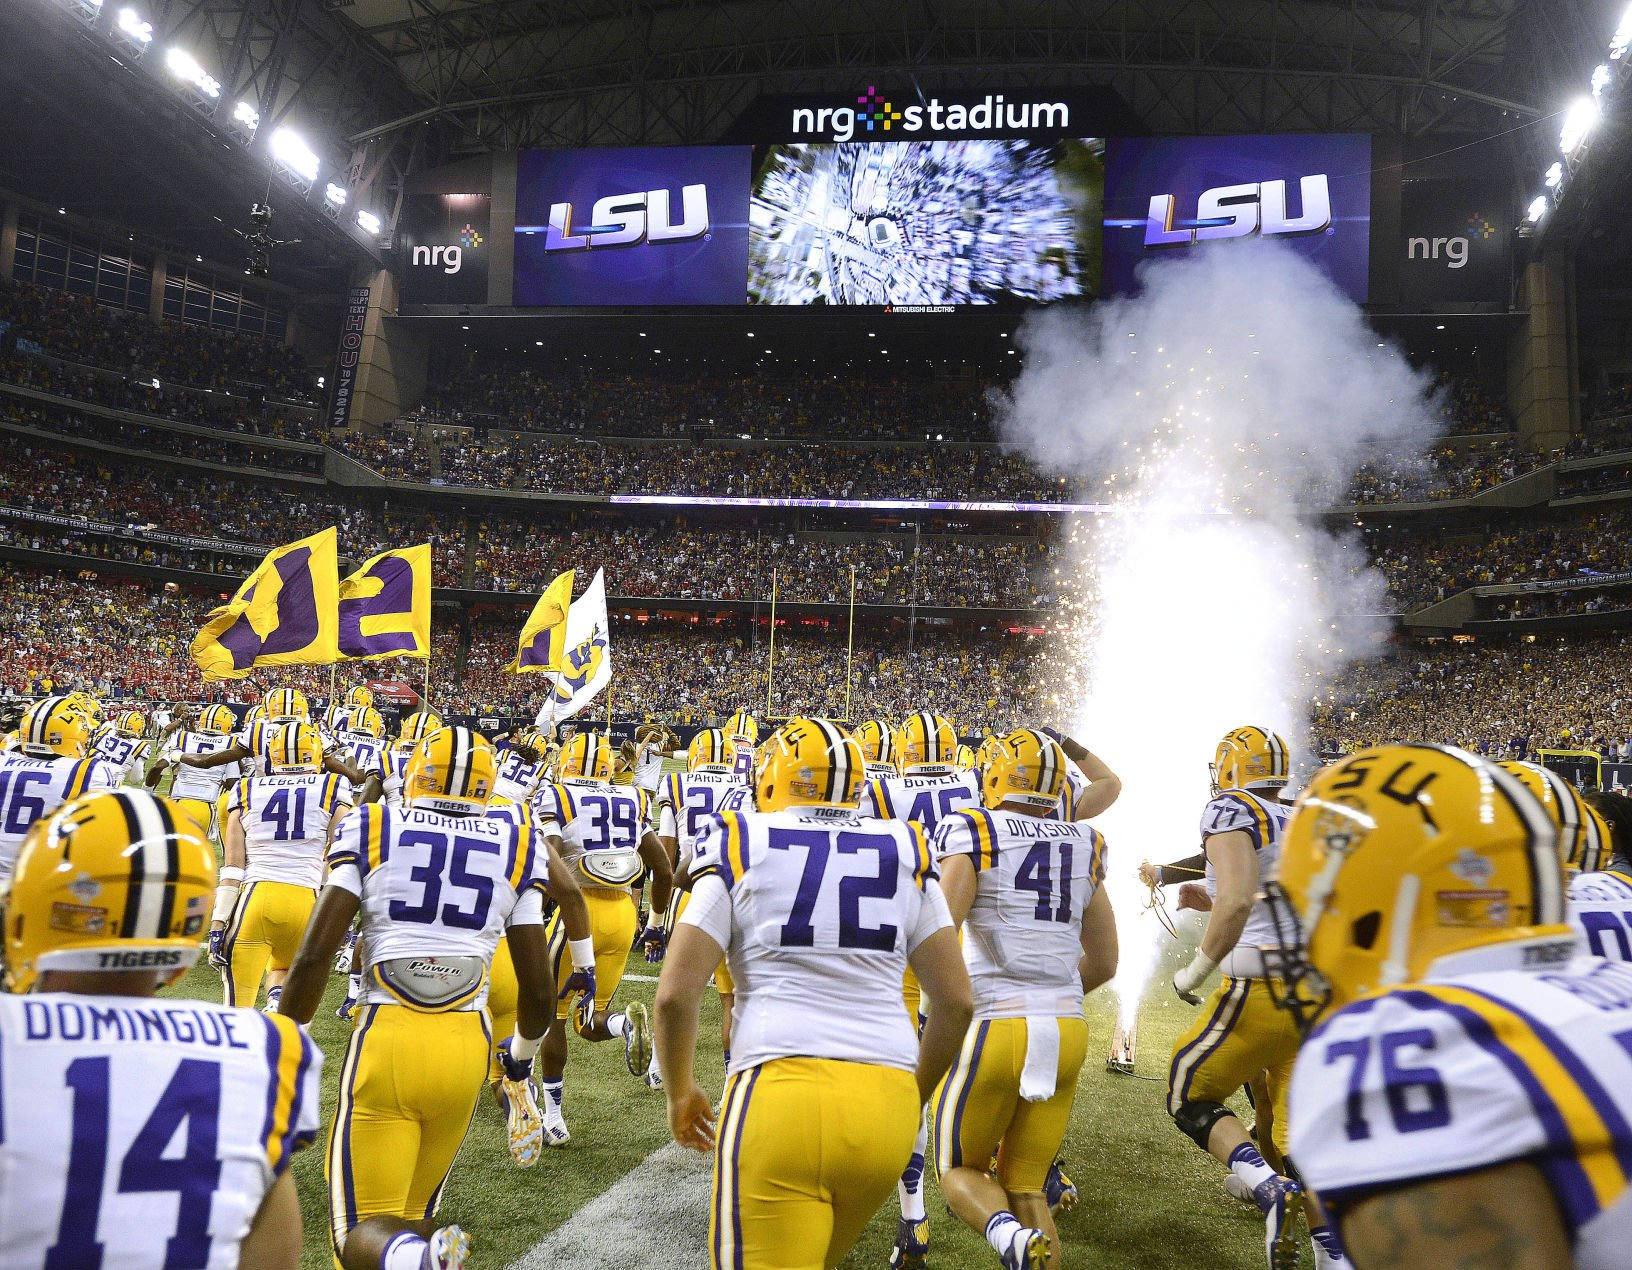 Decision on location of LSU-BYU game expected Monday